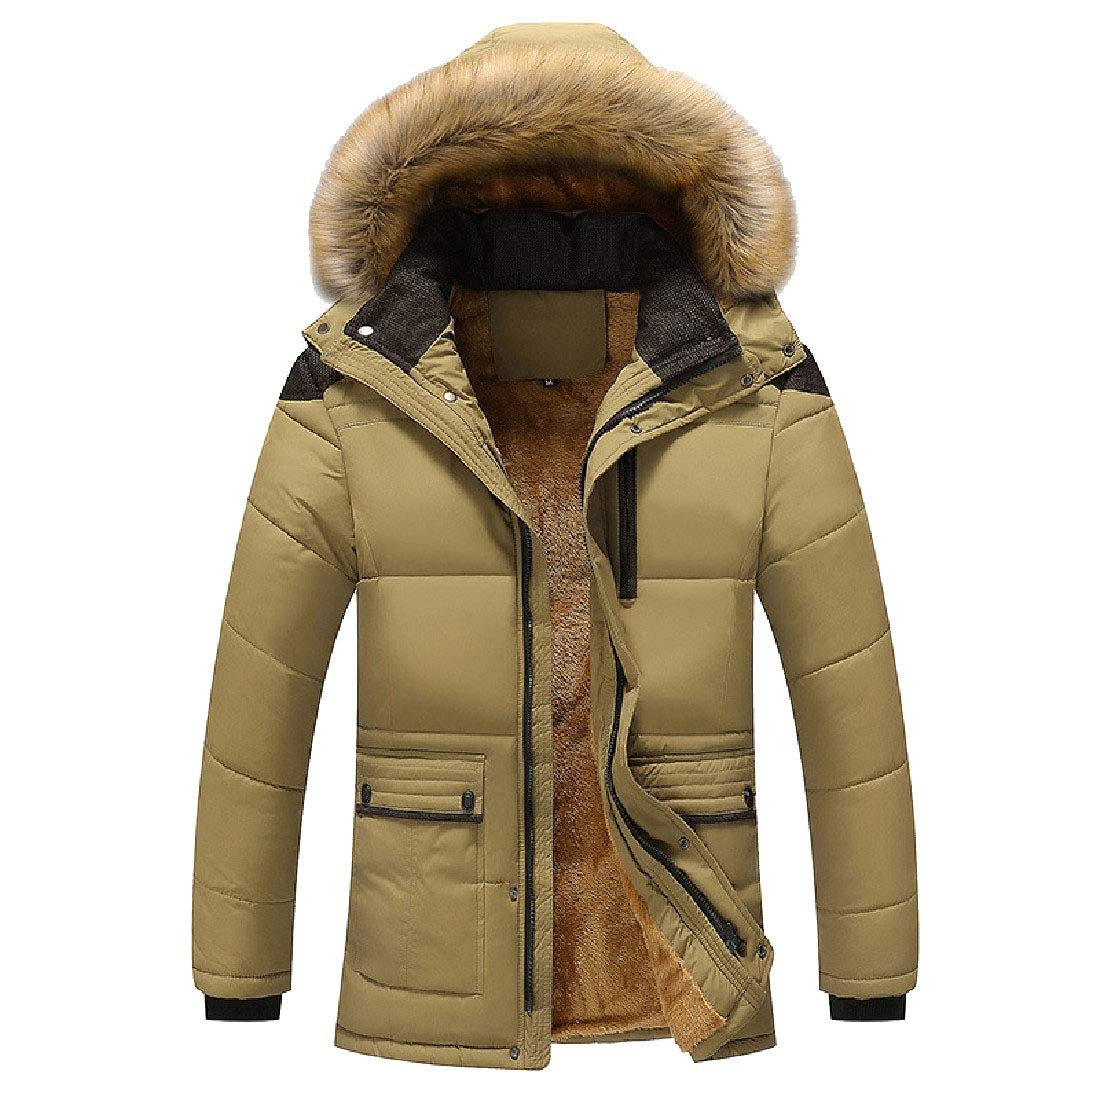 YUNY Mens Faux Fur Hooded Oversized Quilted Parka Jacket Outdoor Coat Khaki M